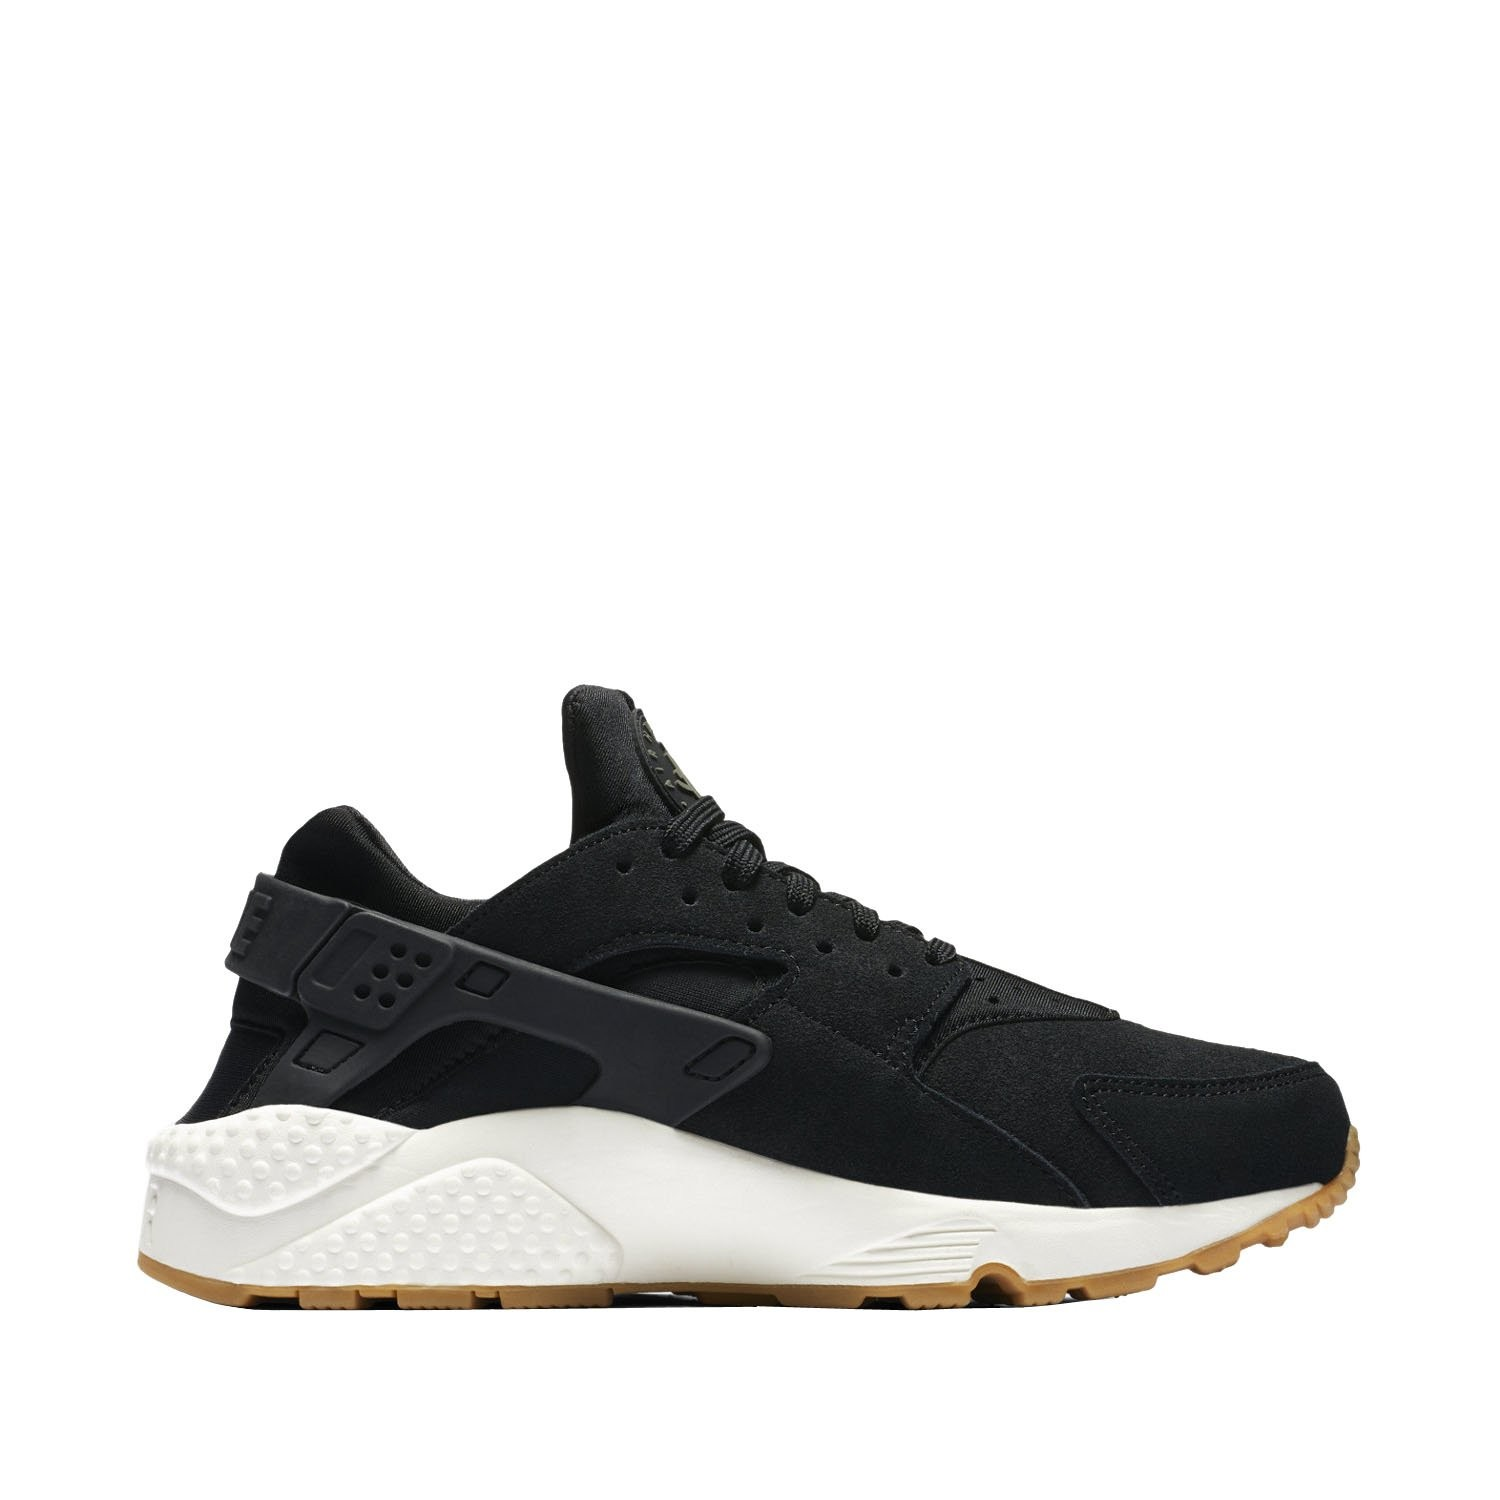 AA0524-001 Nike Dames Air Huarache Run SD - Zwart/Groen/Sail